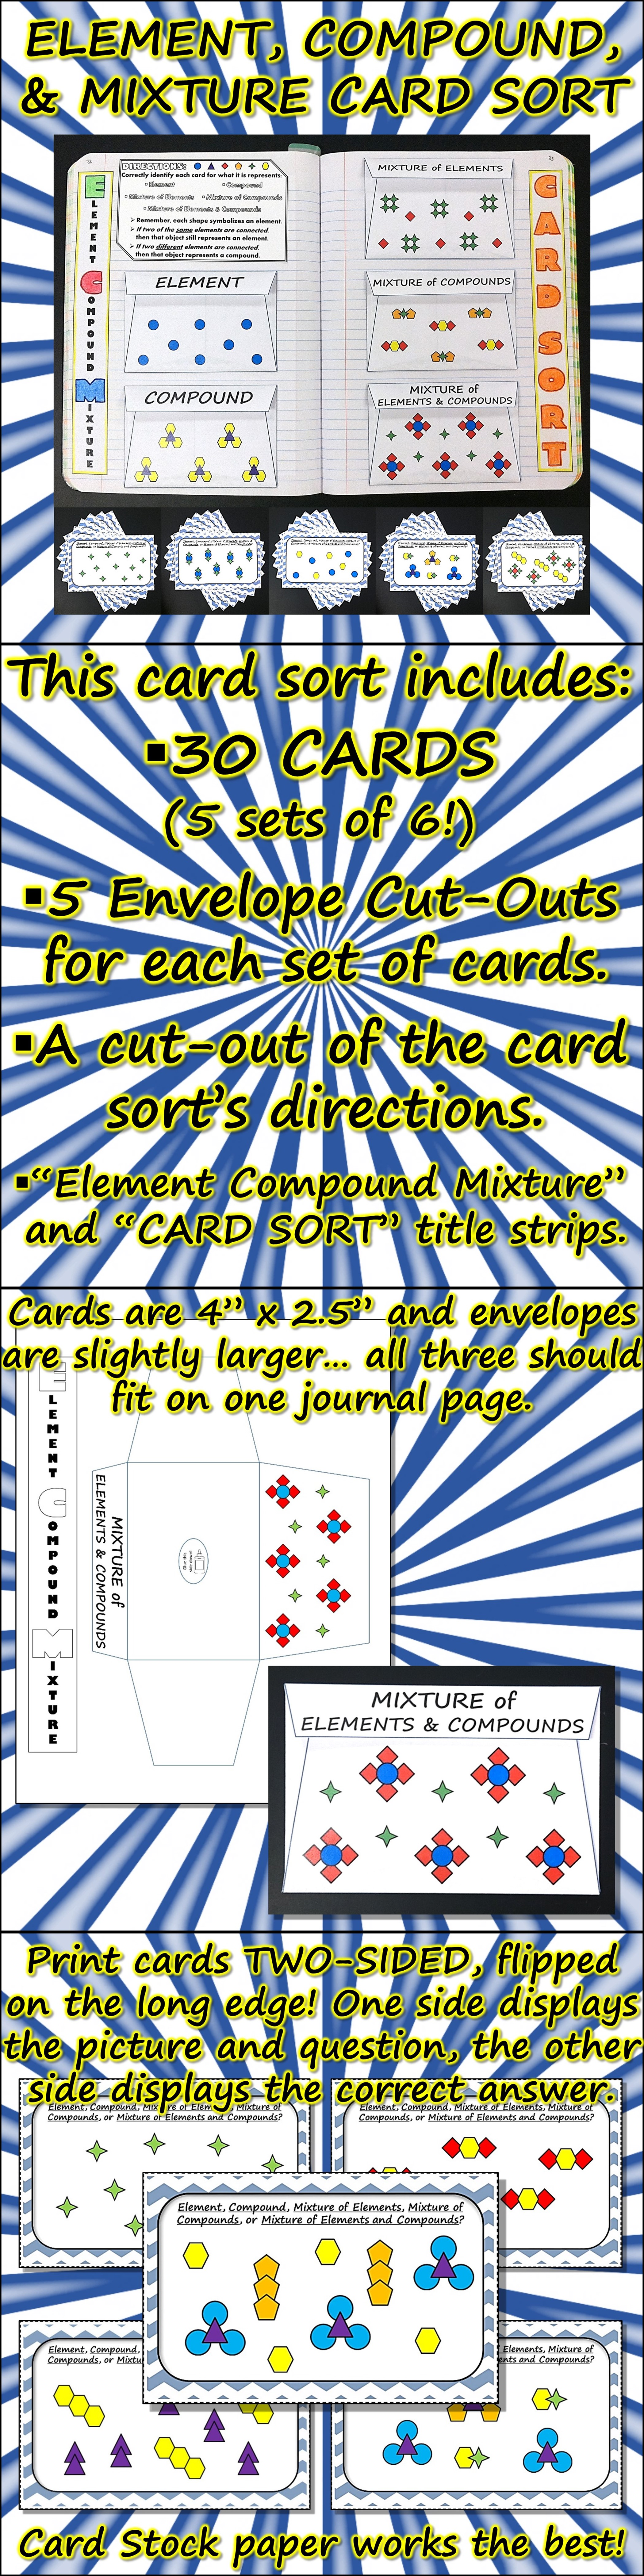 Science Journal Element Compound And Mixture Card Sort